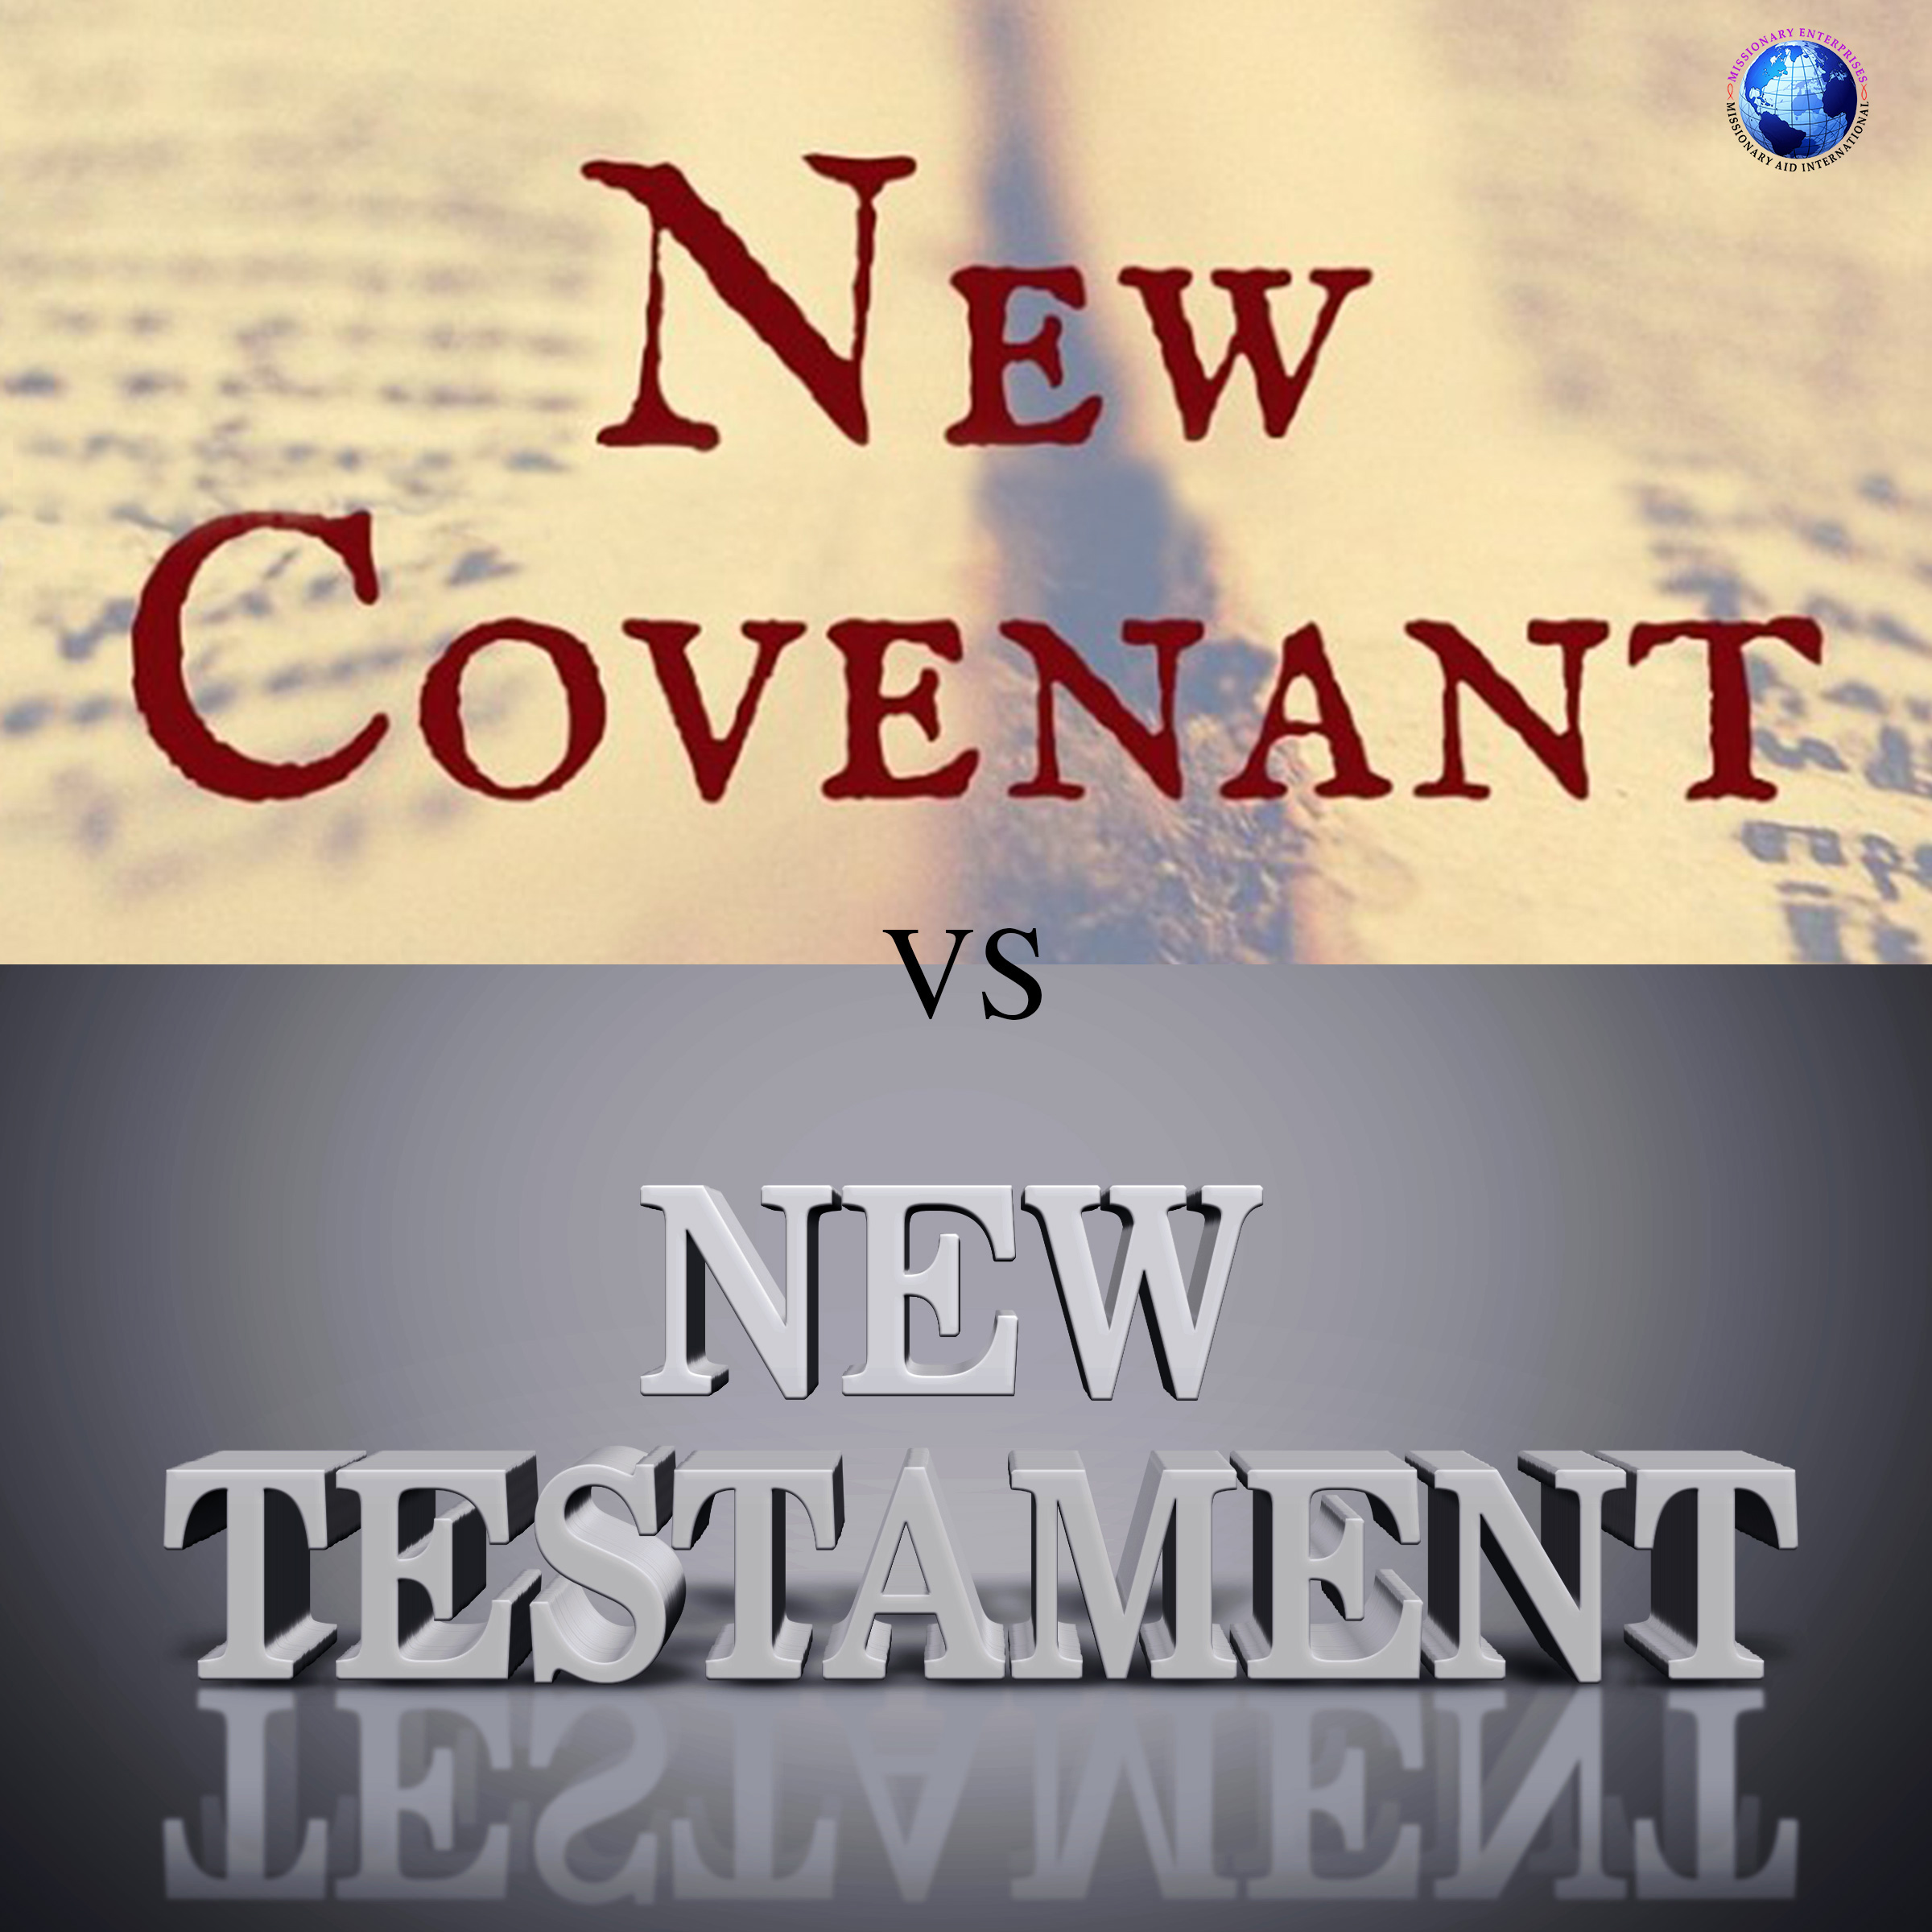 New Covenant vs New Testament